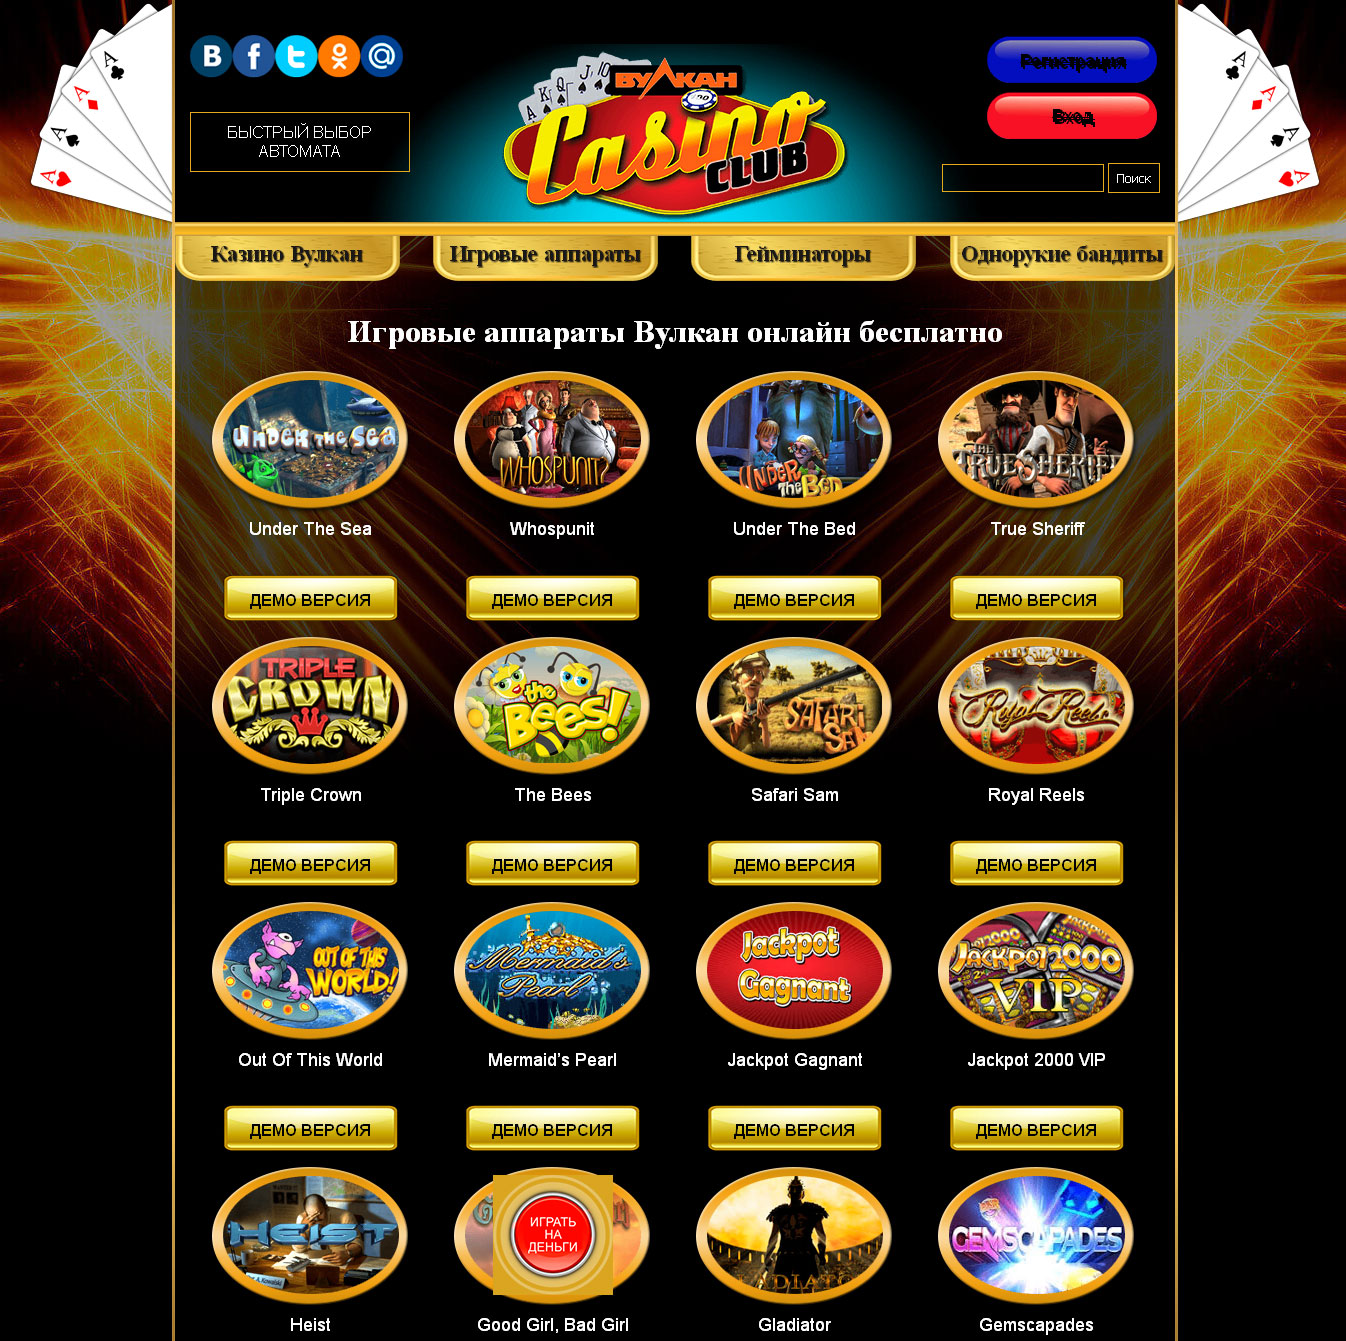 Bonus хантеры casino welcome